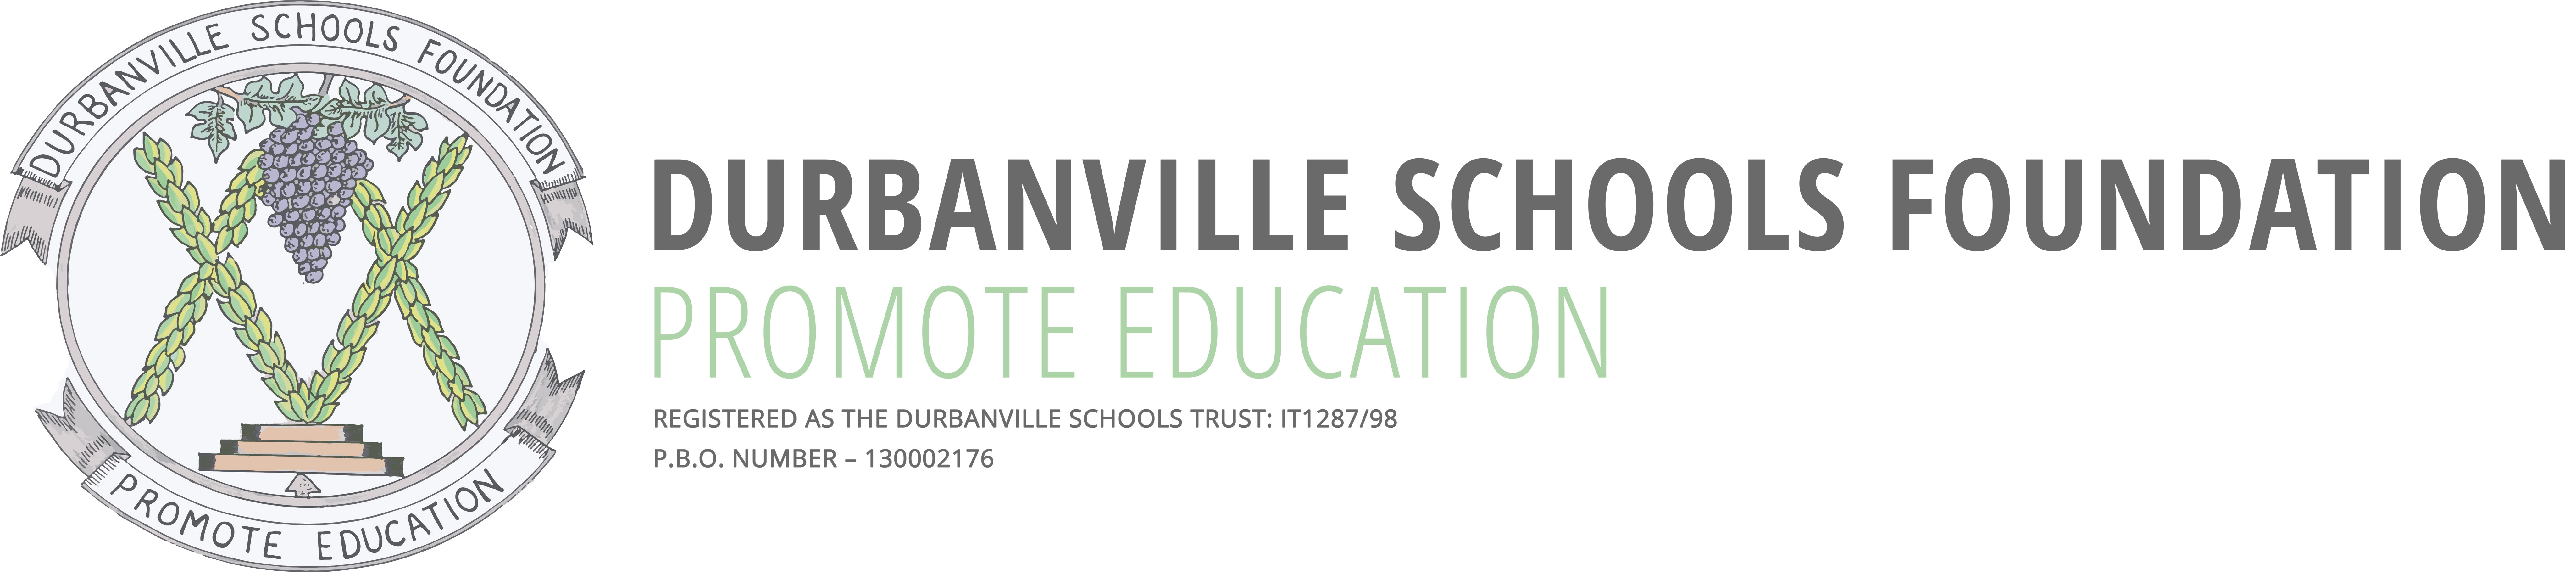 Durbanville Schools Foundation